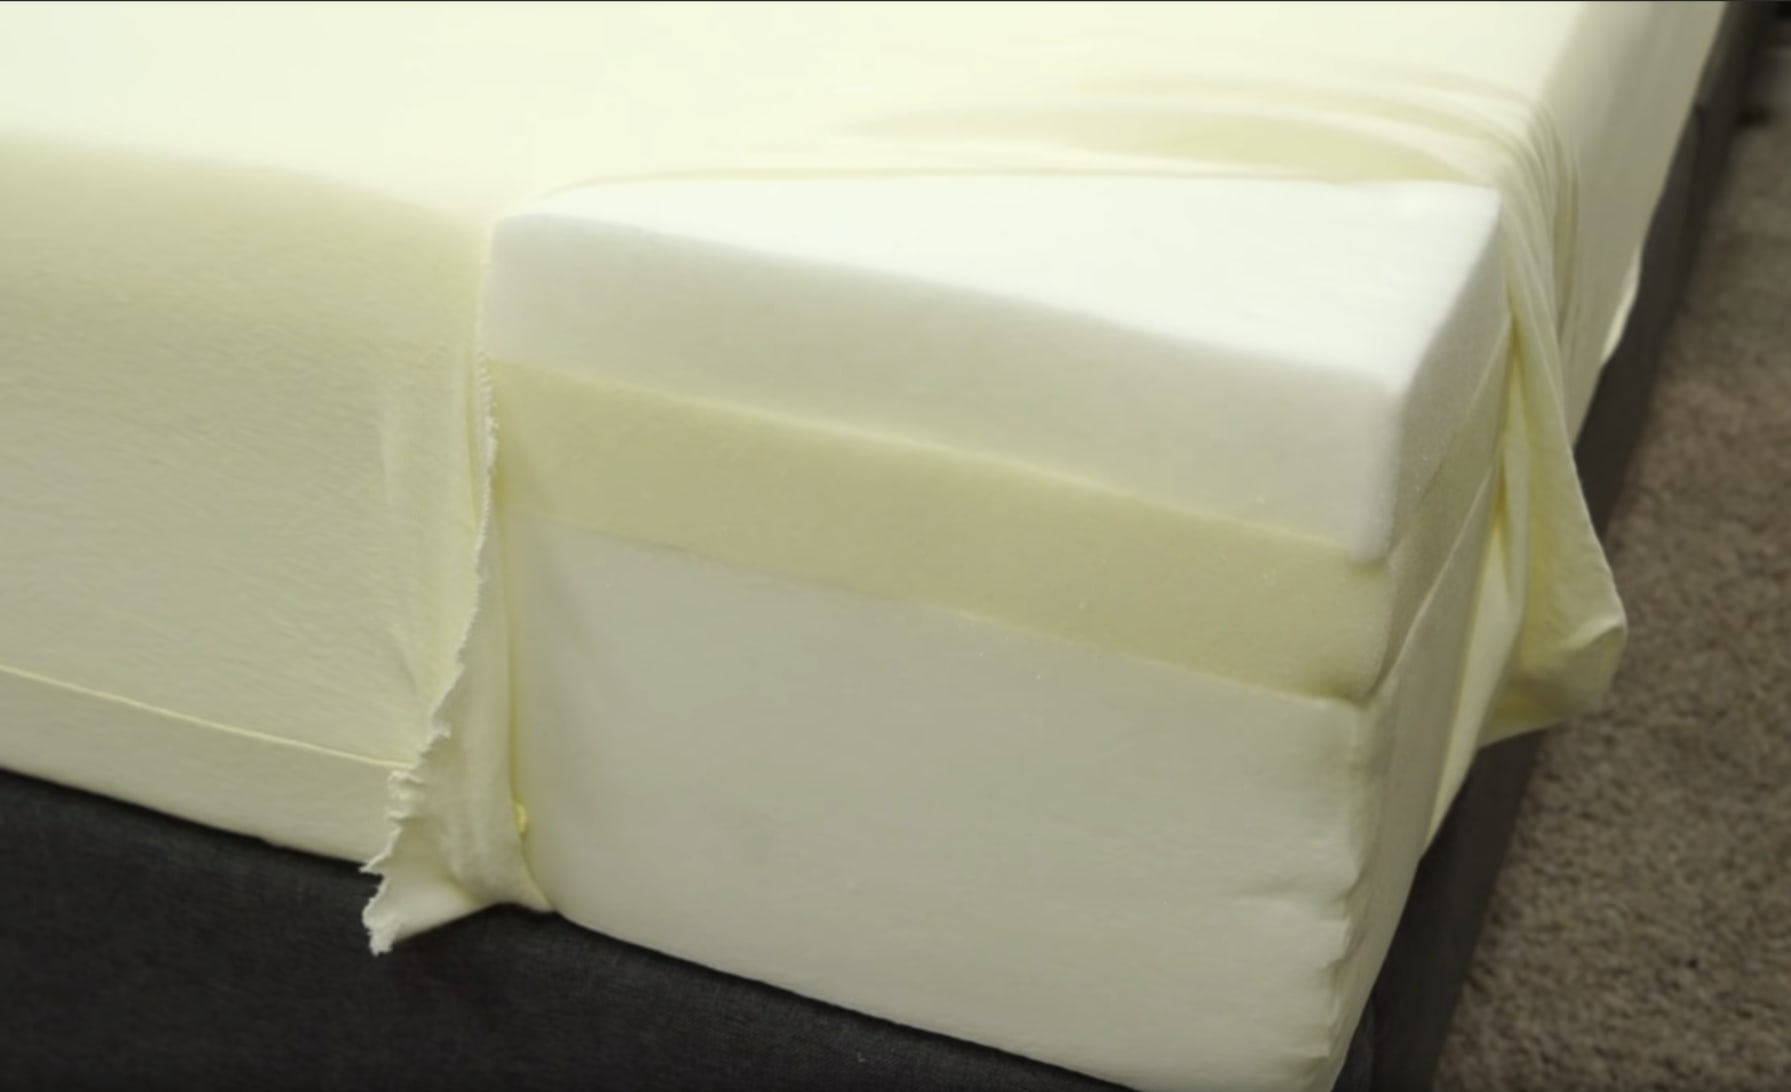 Leesa Mattress Foam Layers